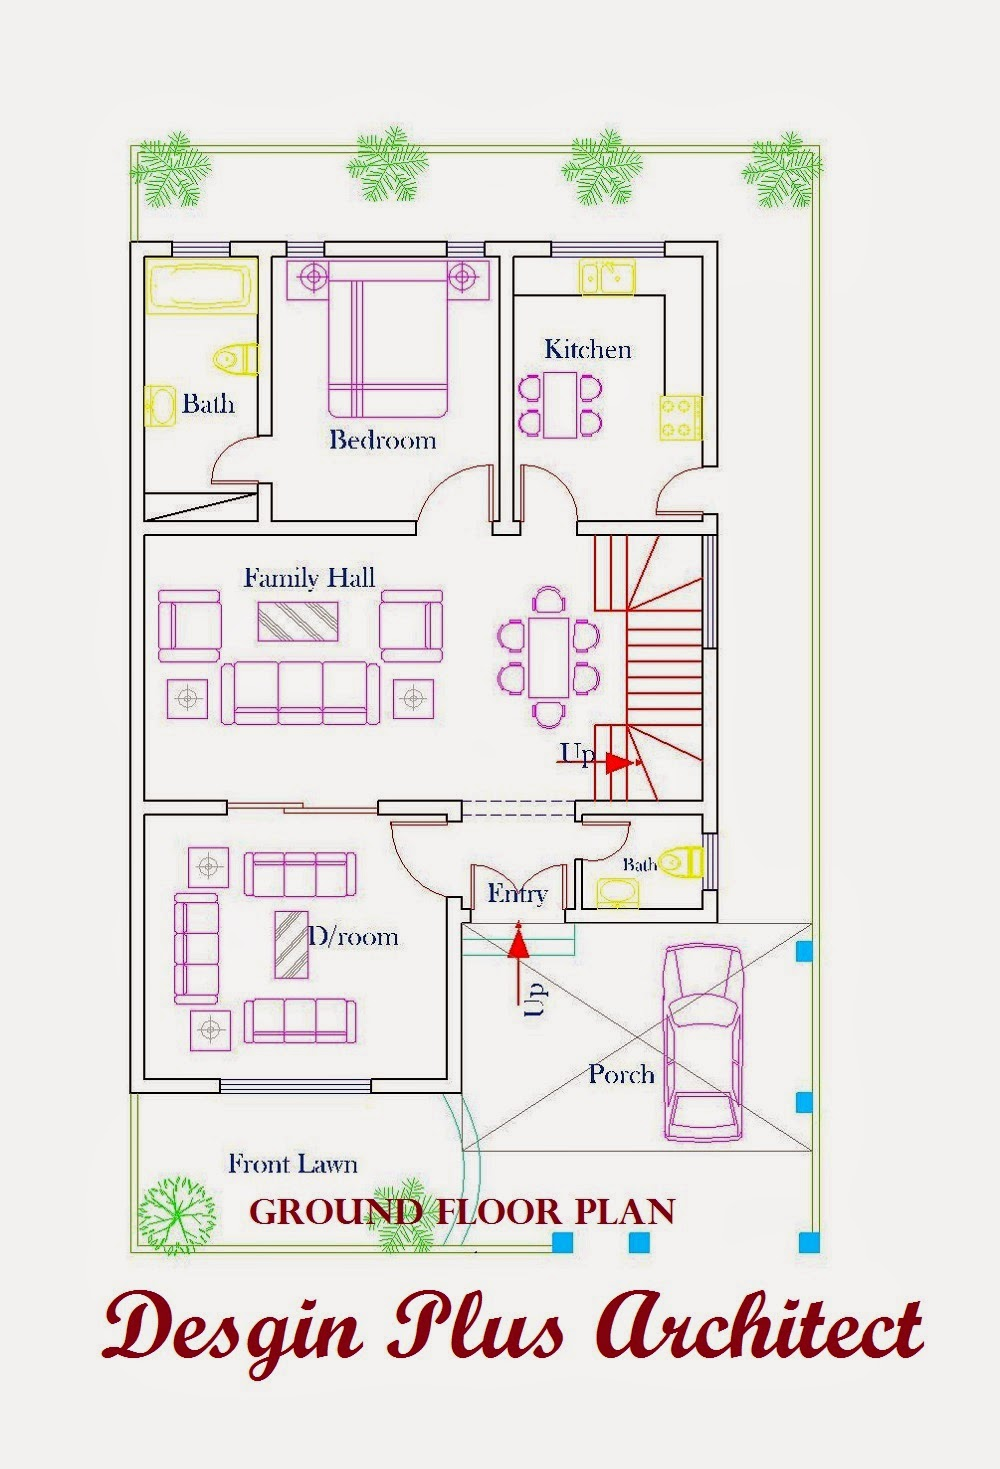 Home plans in pakistan home decor architect designer House layout plan